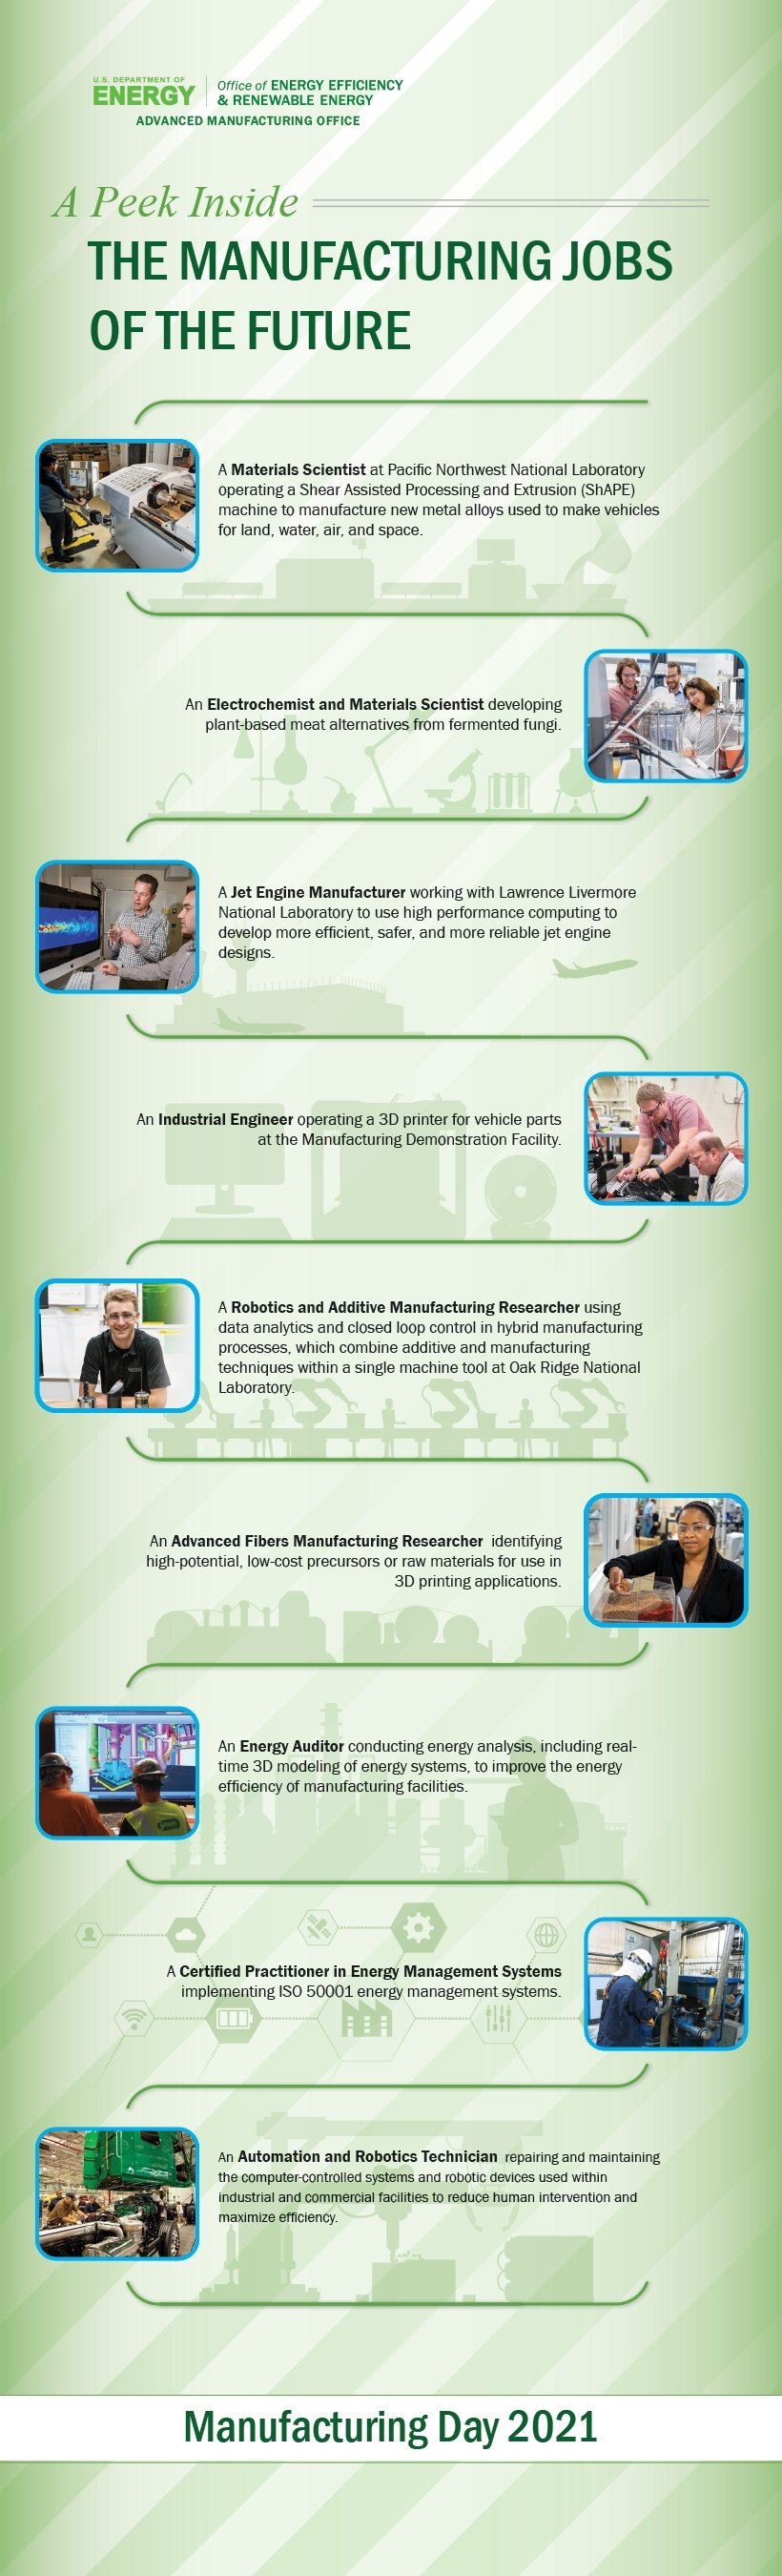 An infographic showing some advanced manufacturing jobs, including, Certified Practitioner in Energy Management, Automation and Robotics Technician